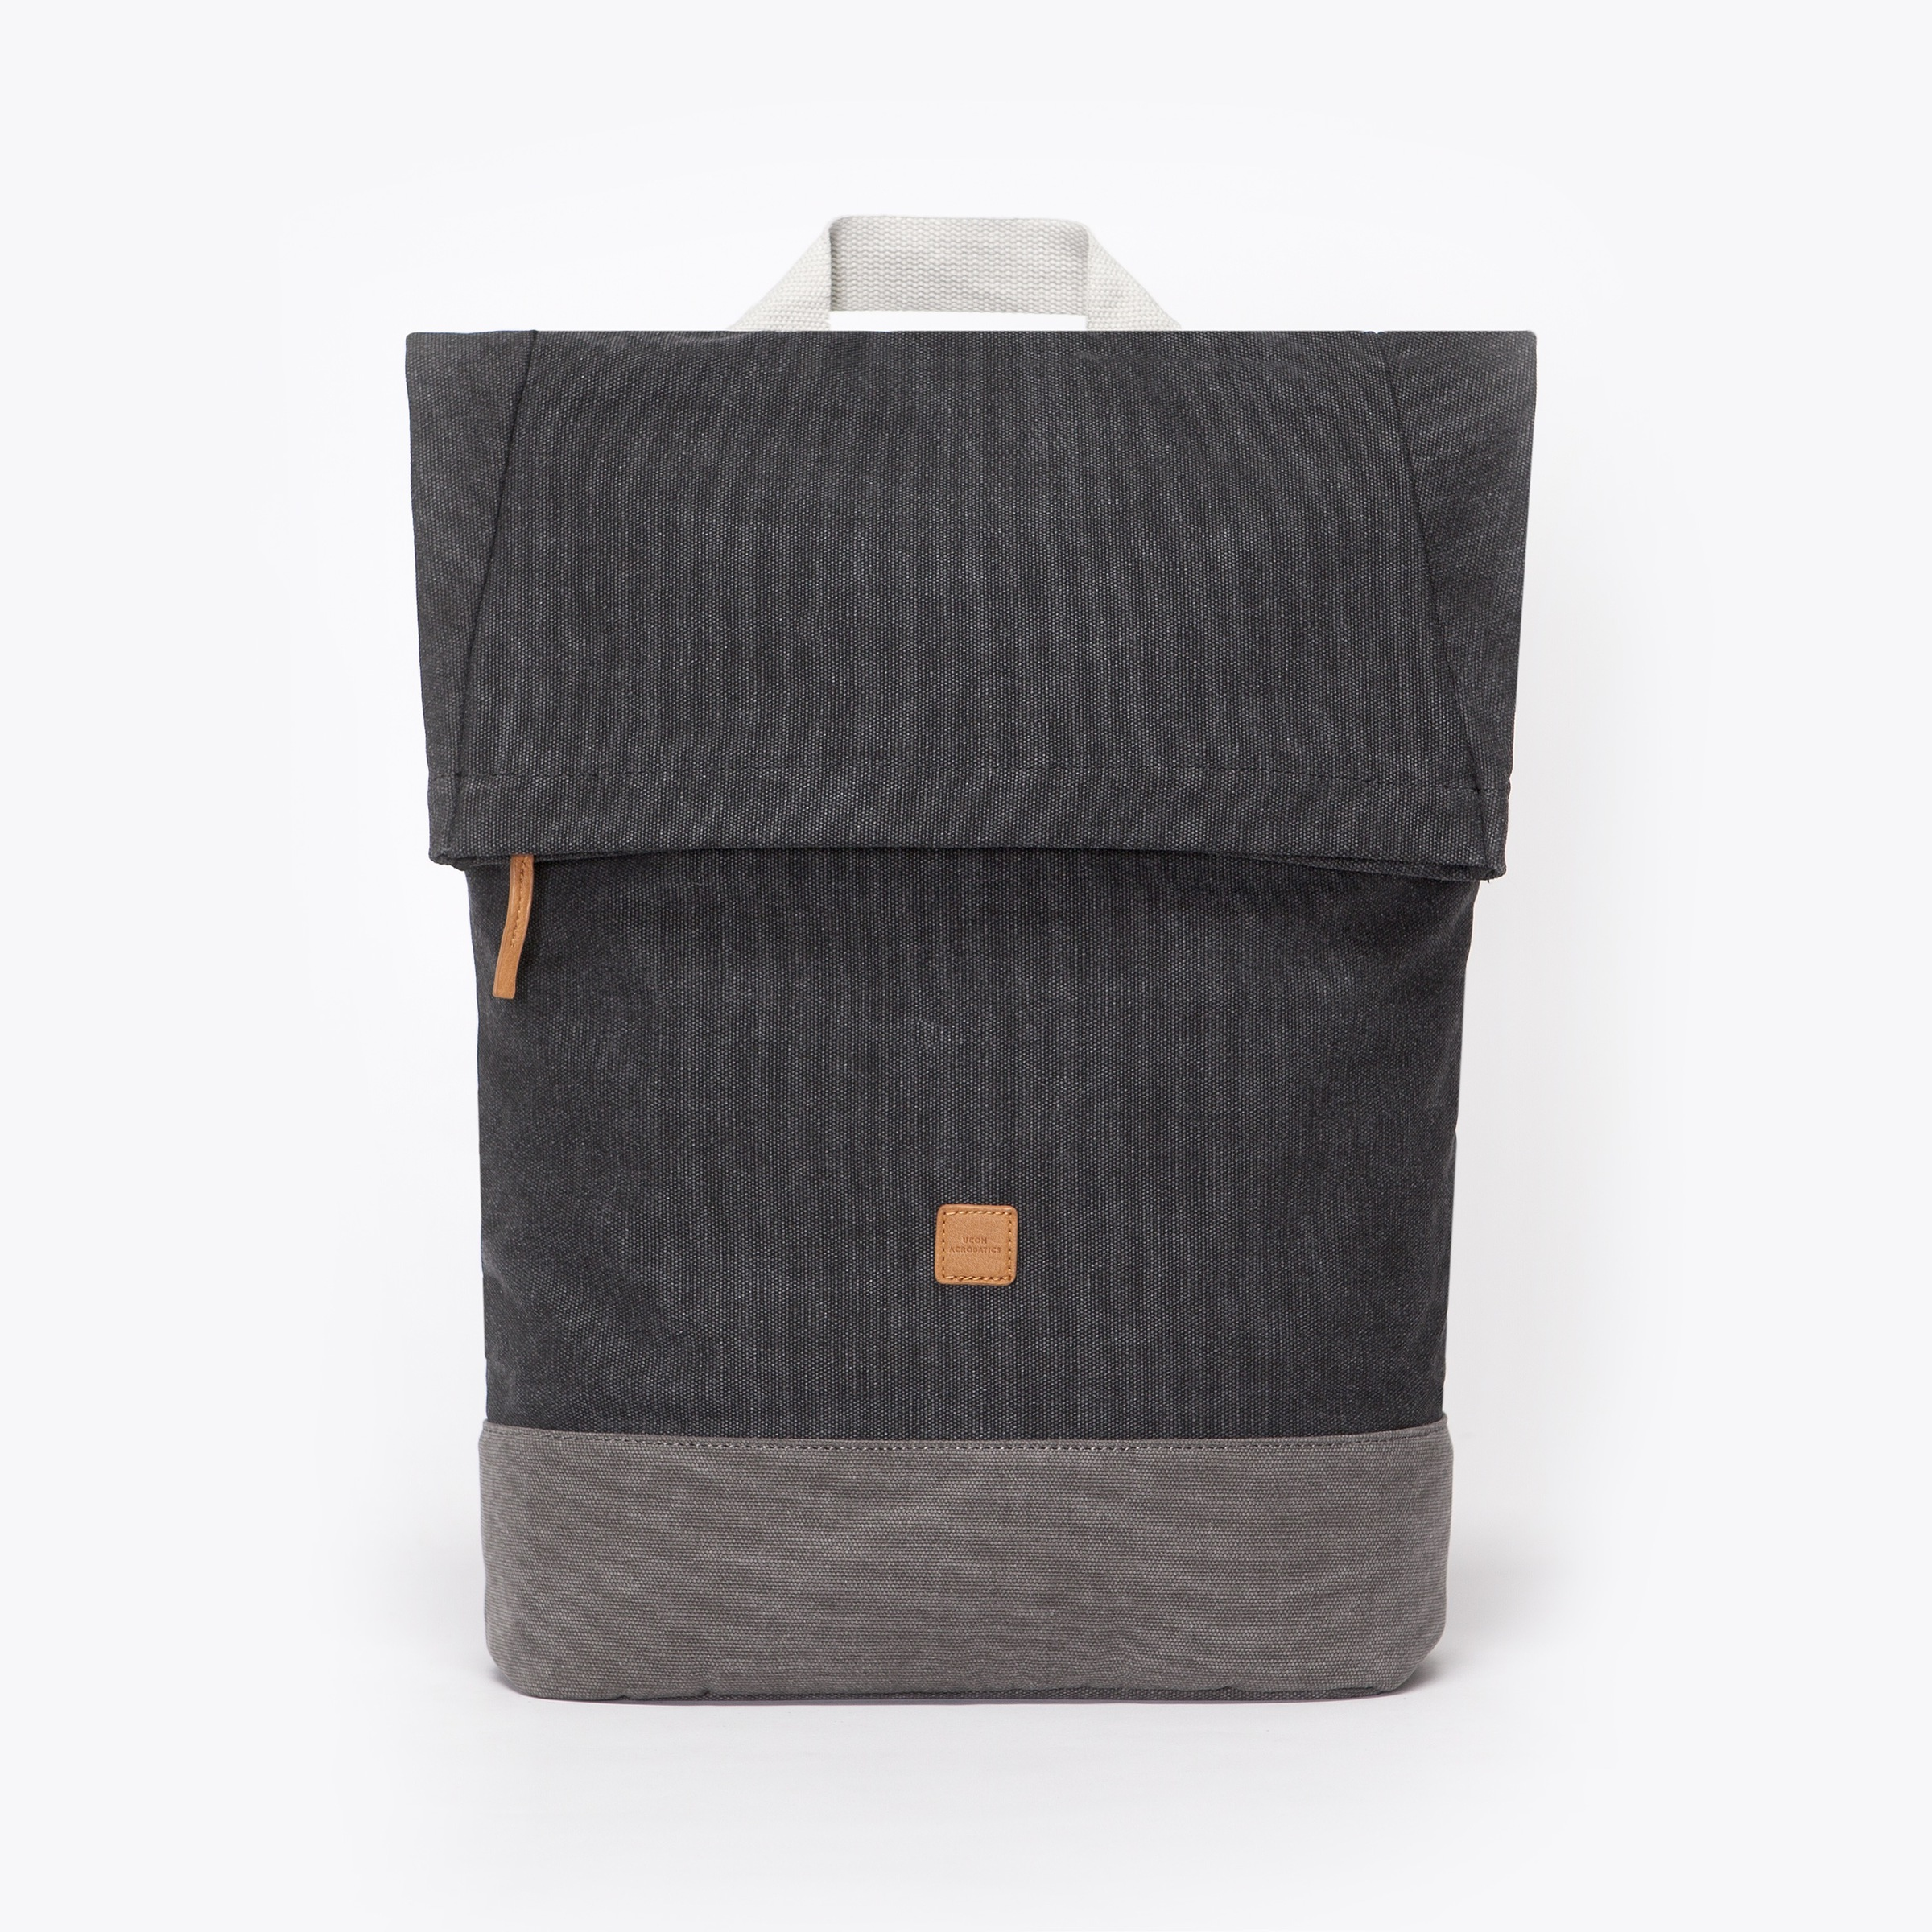 UA-BP-02_Karlo-Backpack_Grey-Black_04.jpg